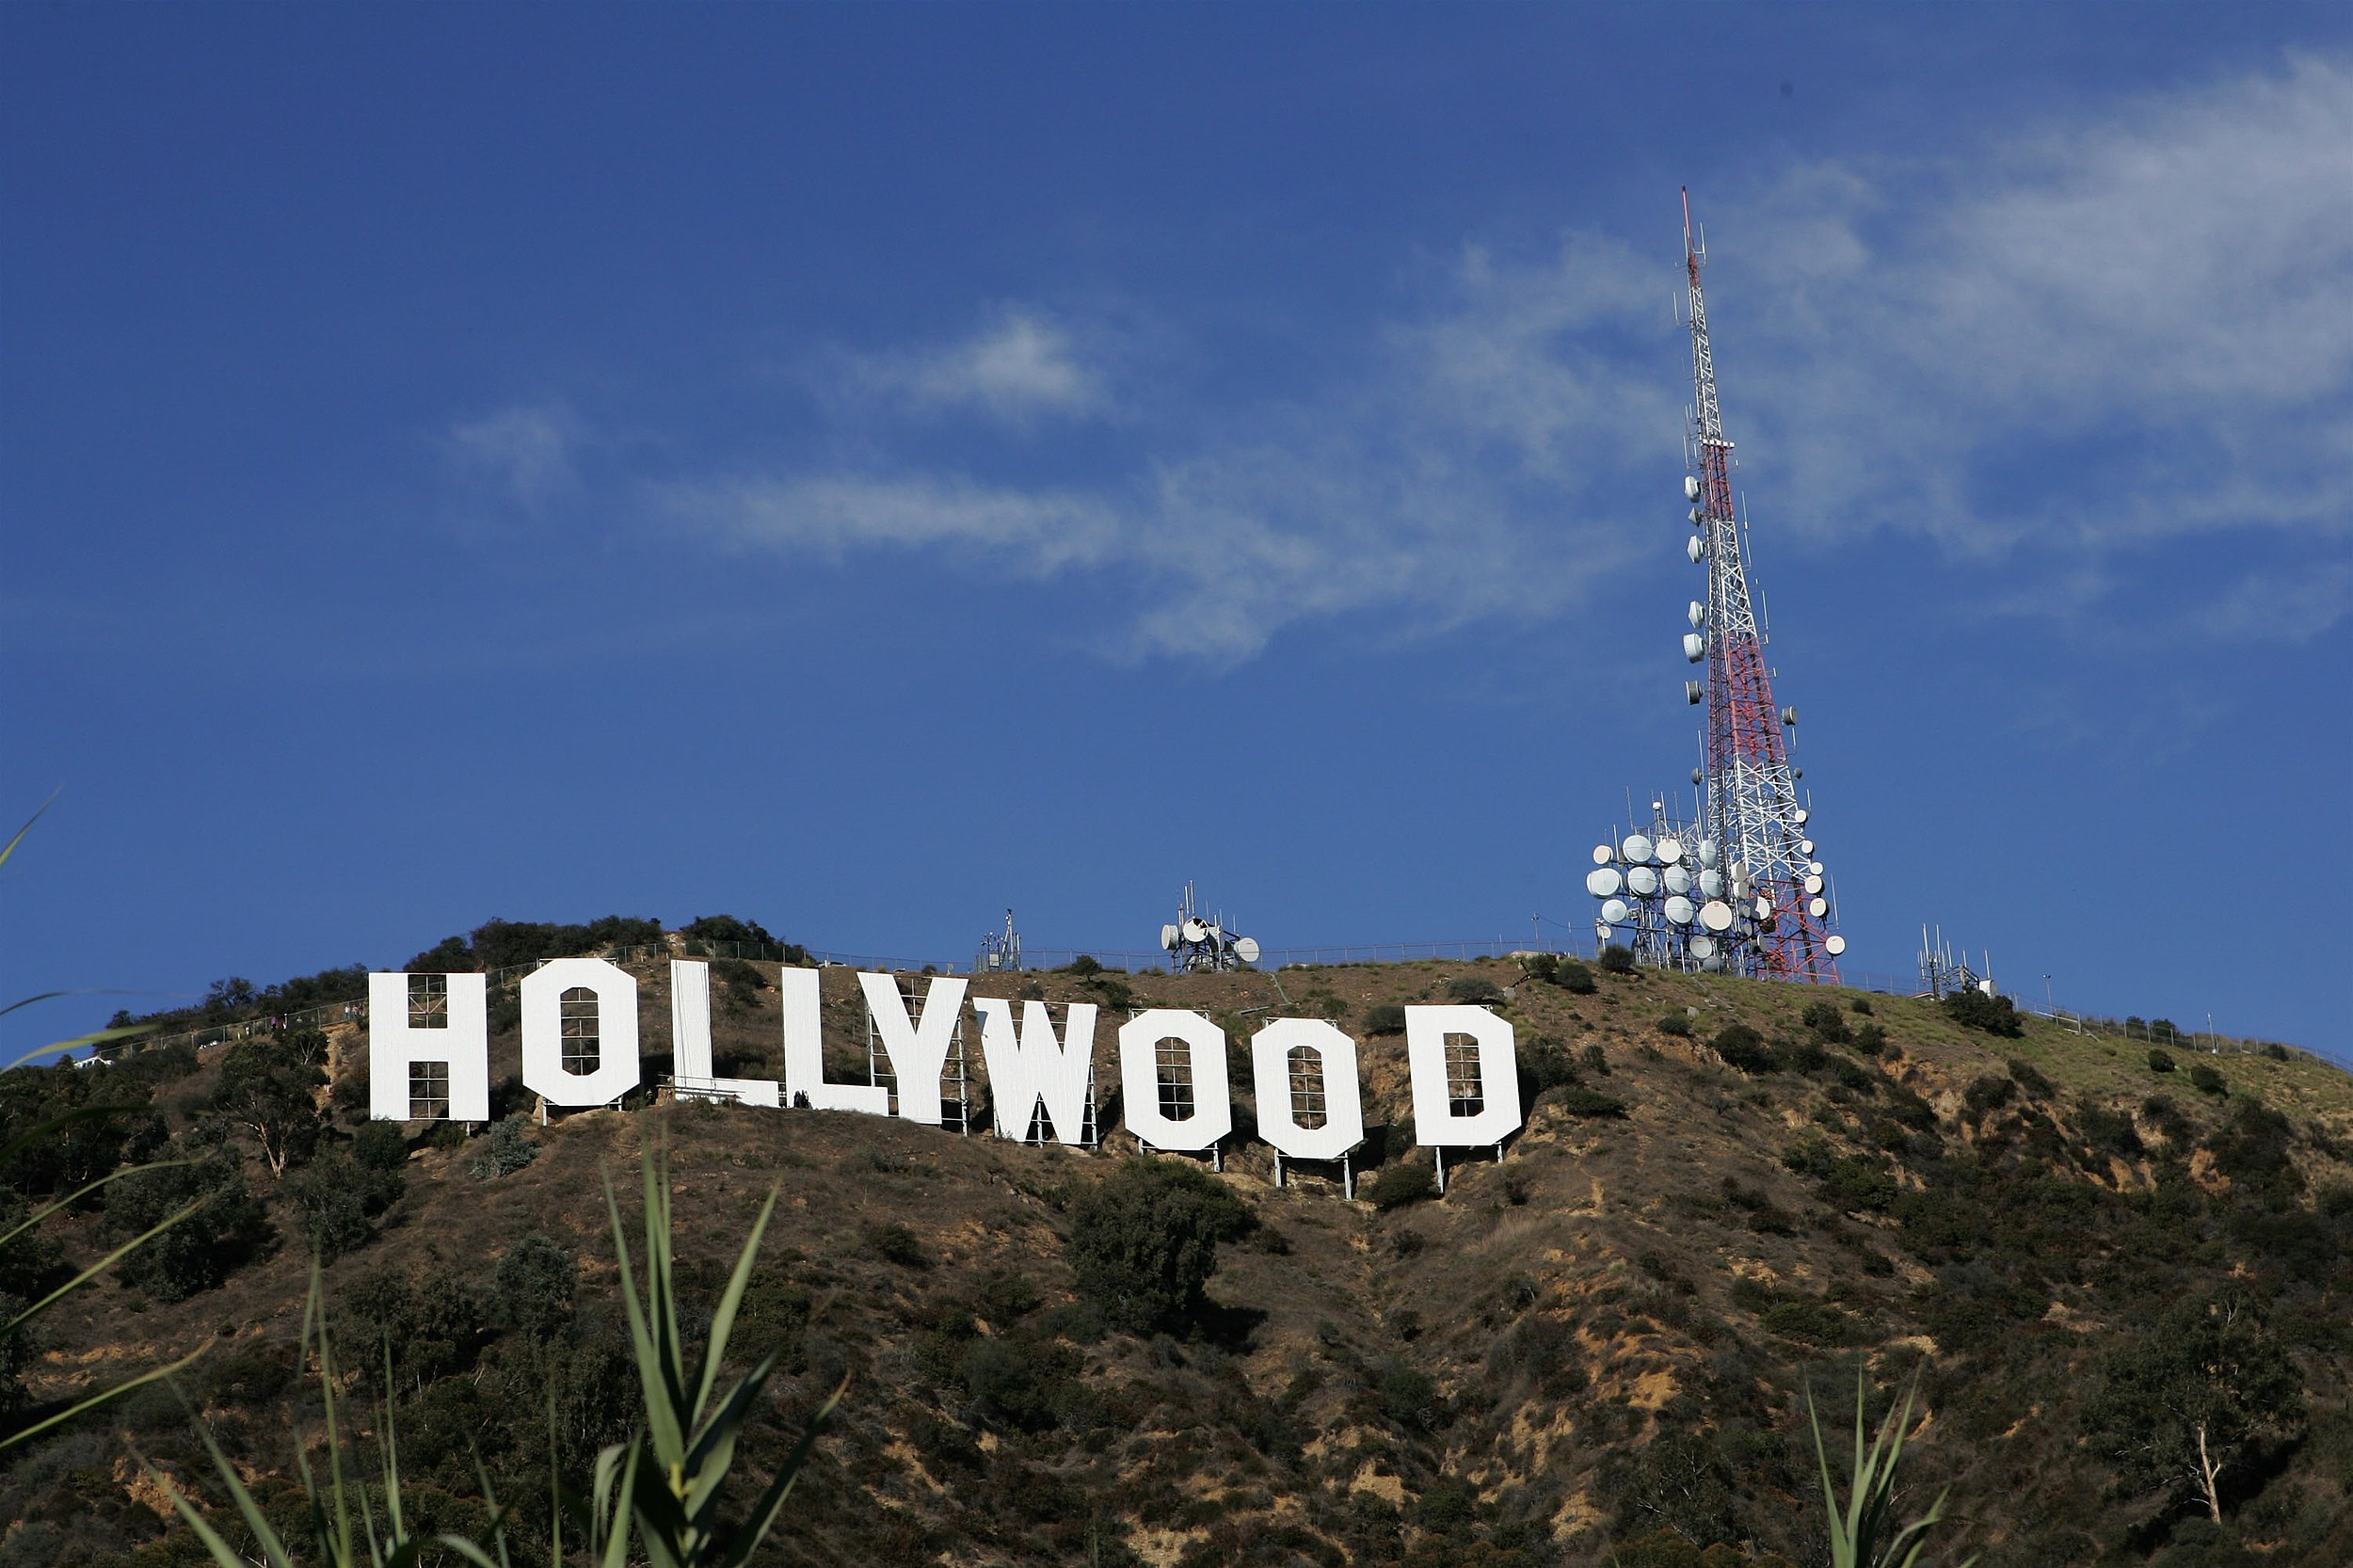 Who's Next on the Hollywood Wheel of Allegations?